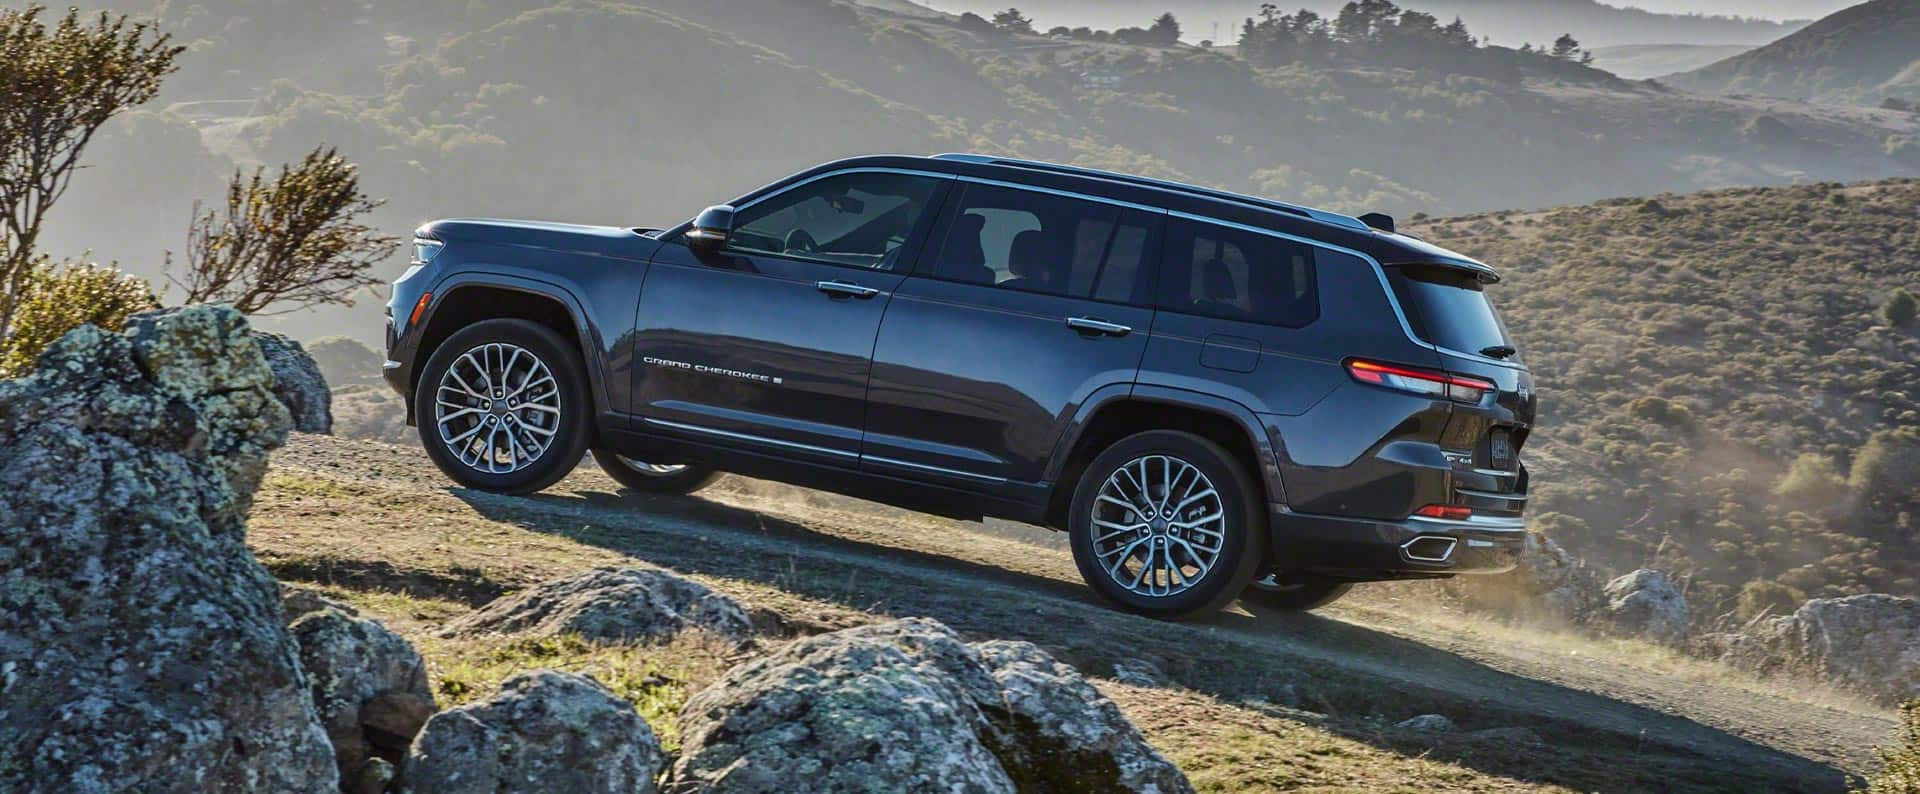 The 2021 Jeep Grand Cherokee L Summit Reserve parked facing uphill on a grassy track in the mountains.